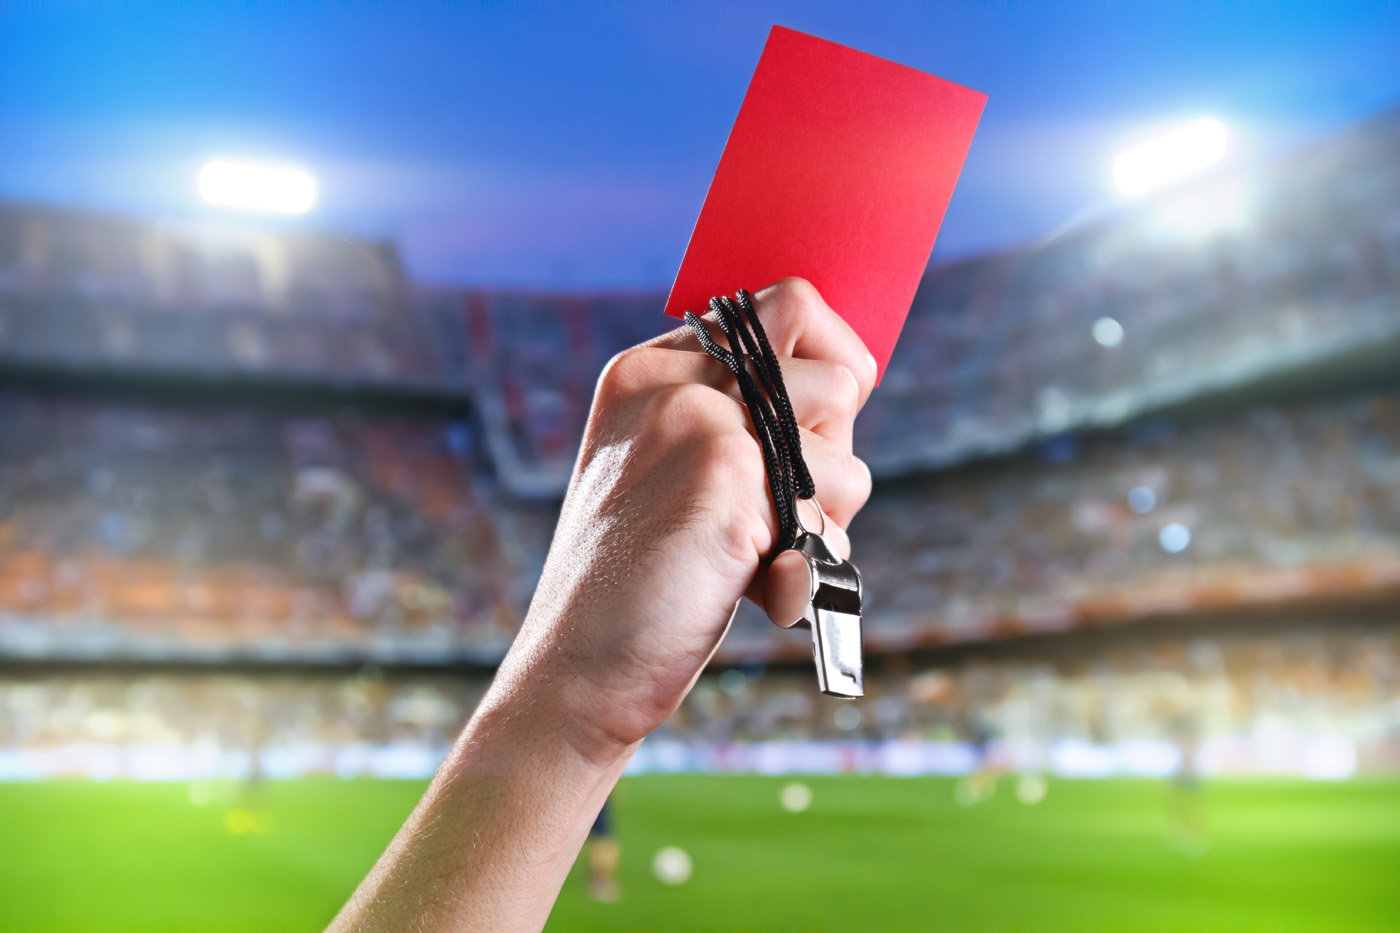 50896-the-referee-in-red-card-gesture.jpg